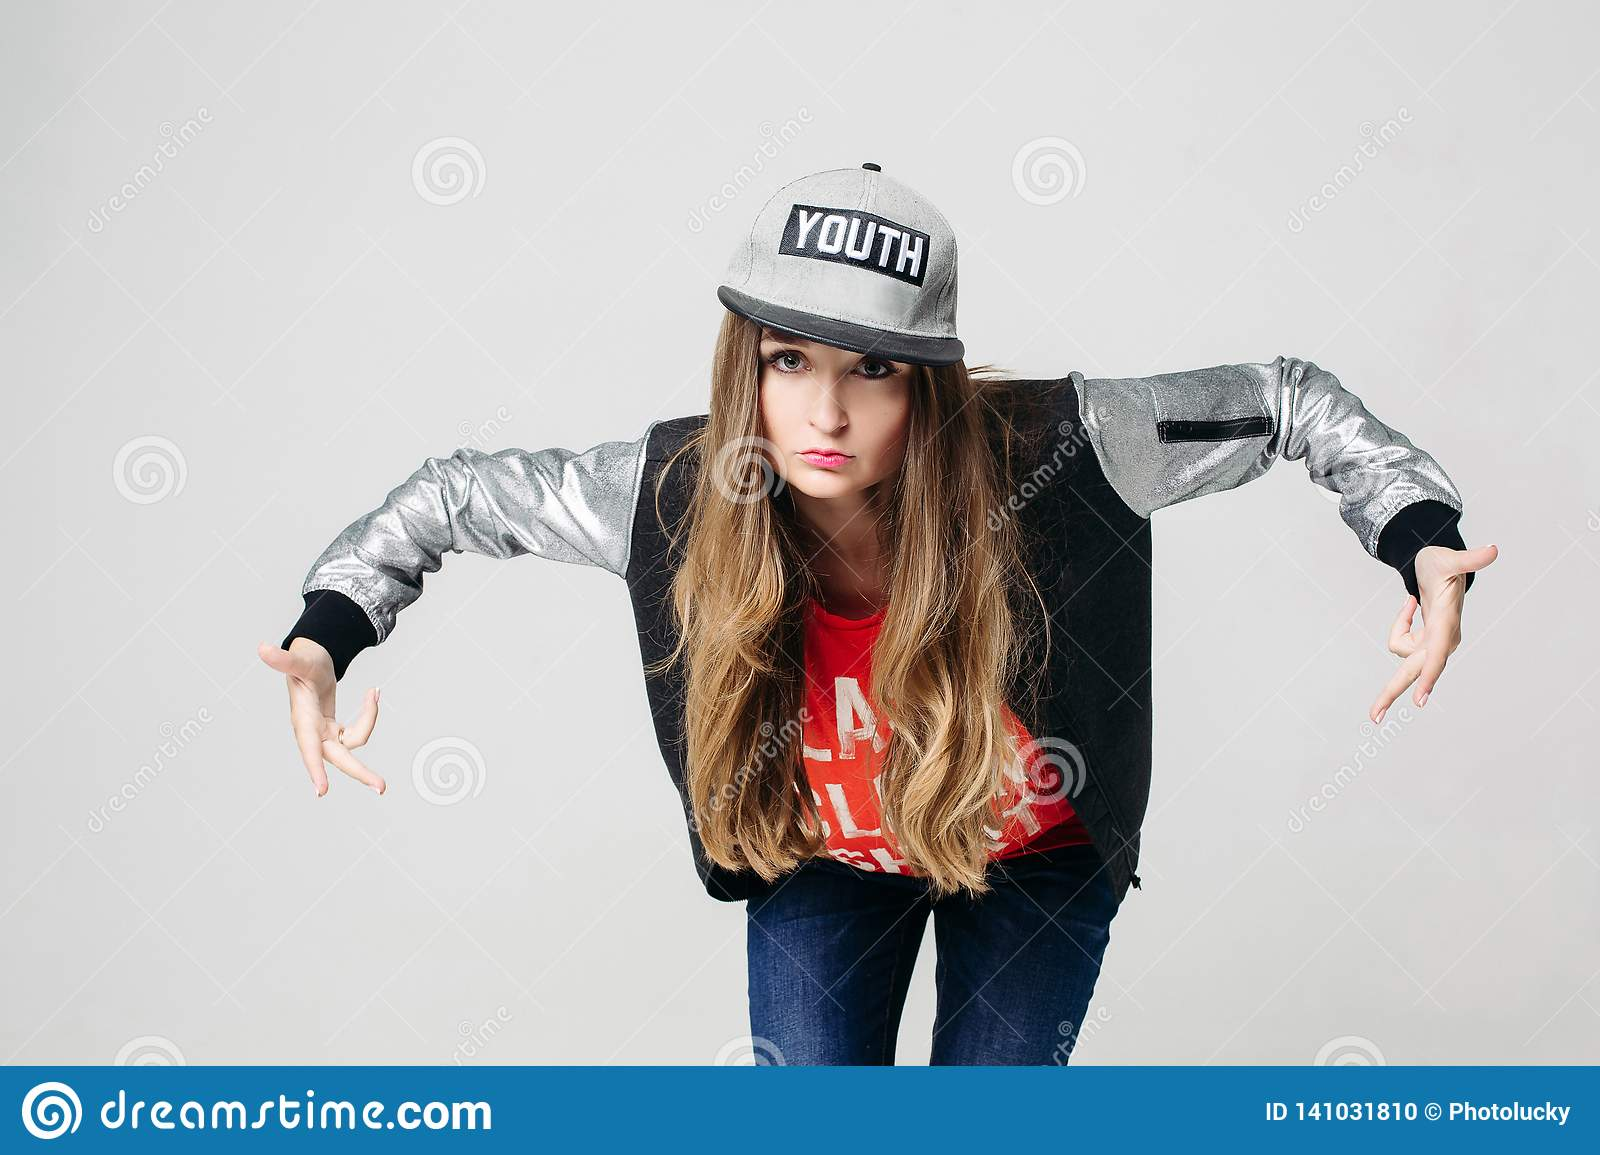 Swag Stylish Teenage Girl In Cap Posing With Hands Up. Stock